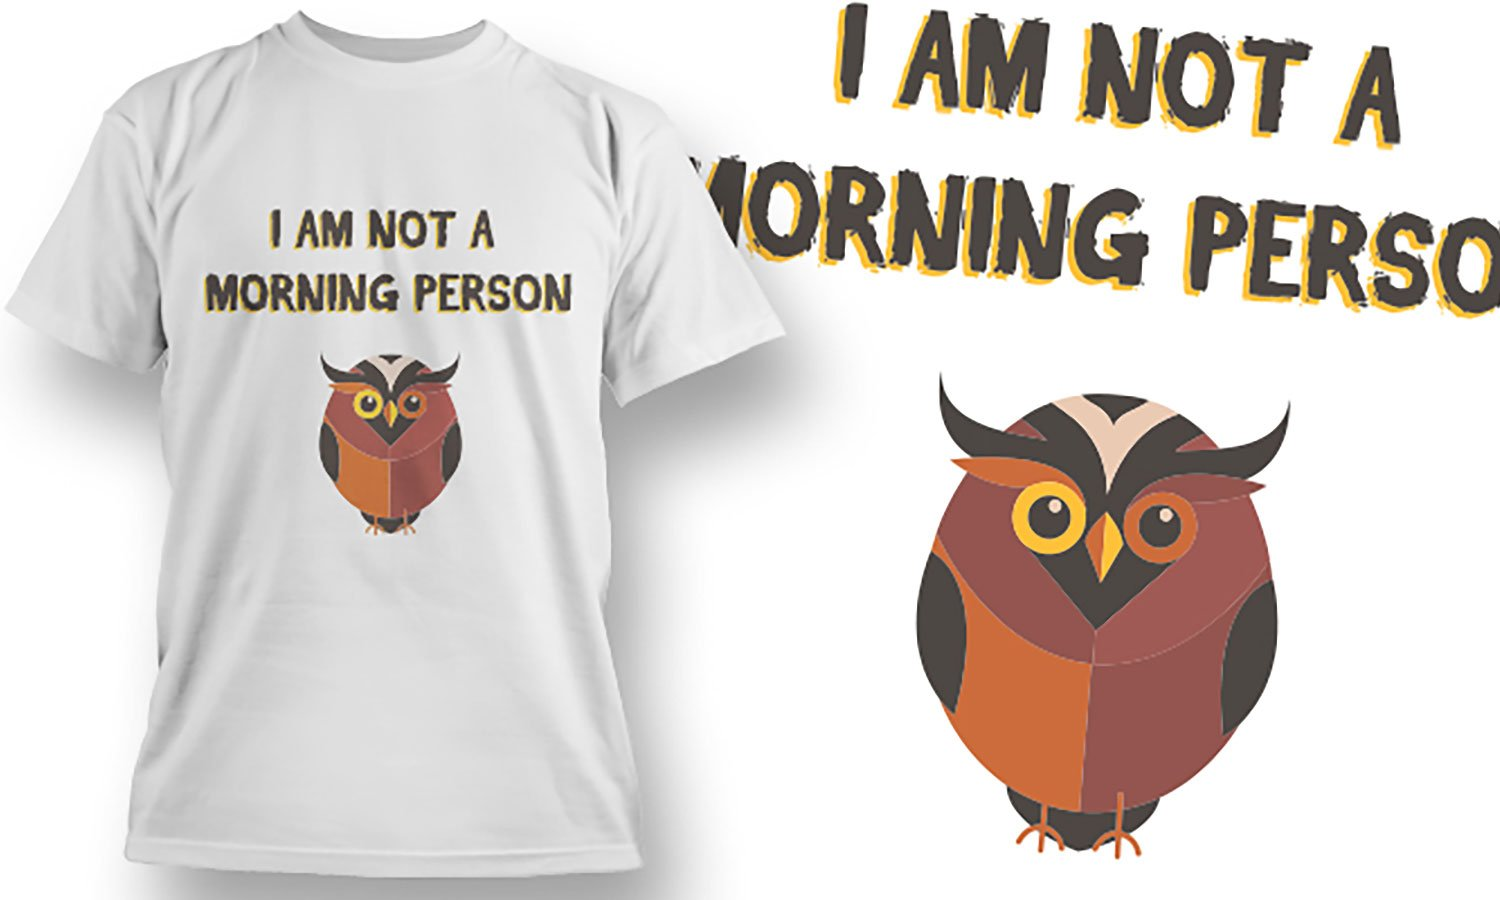 Morning Person - Printed T-Shirt for Men, Women and Kids - TS442